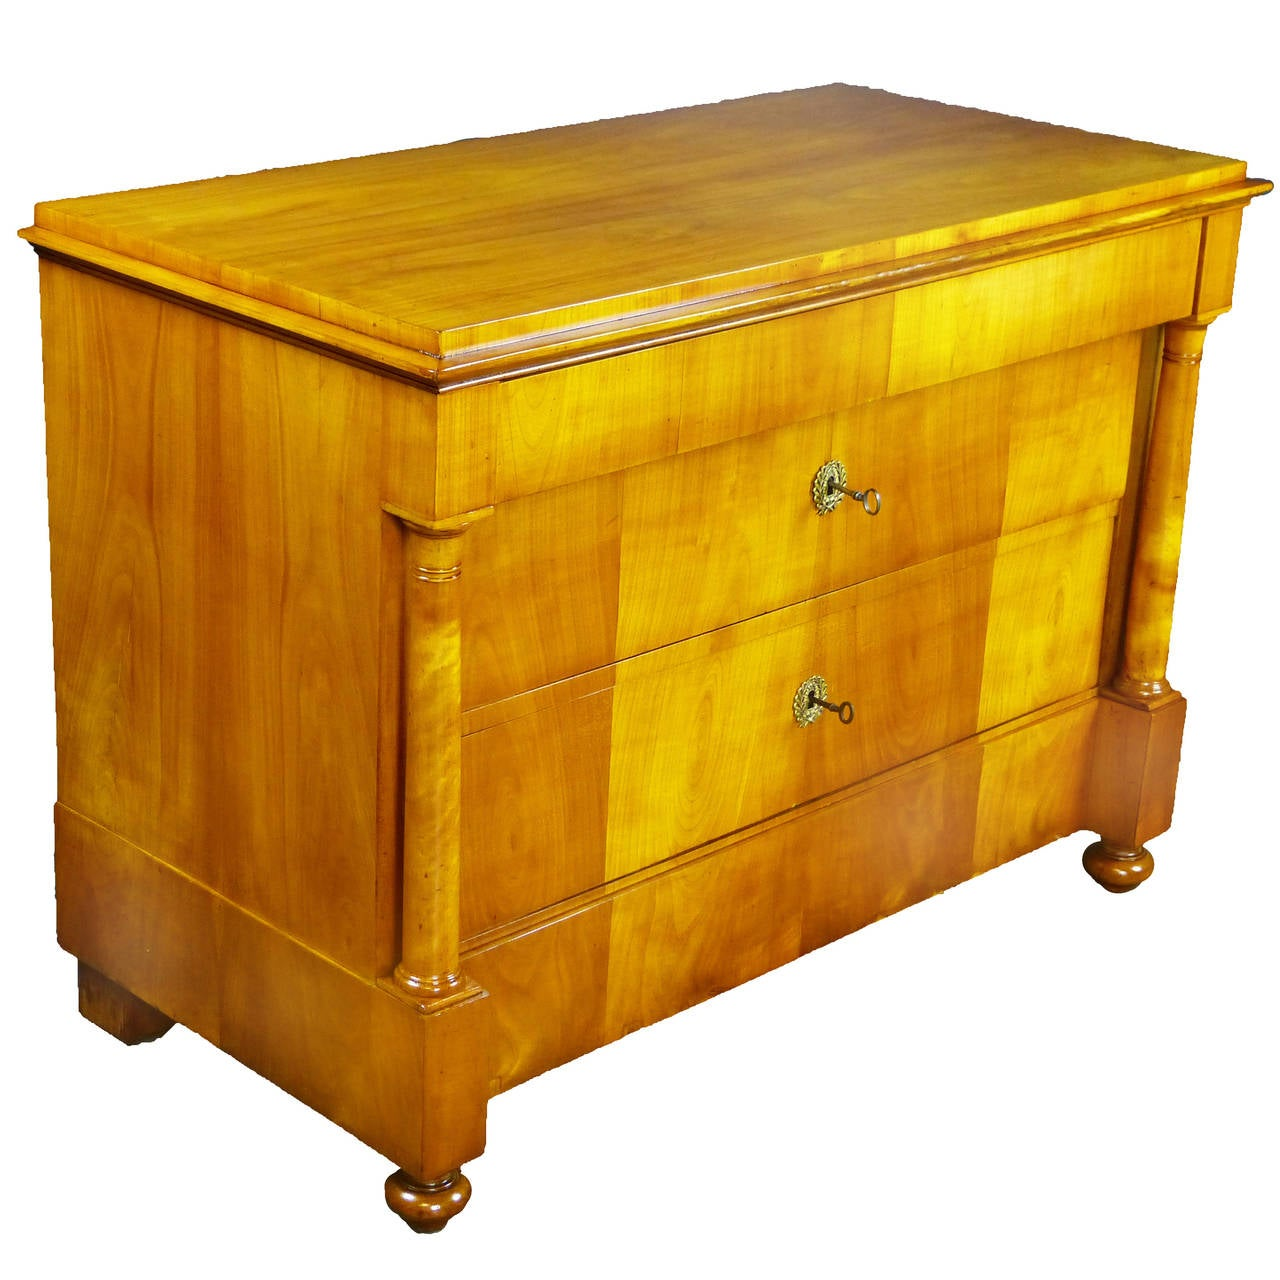 Early 19th Century Swedish Biedermeier Cherry Wood Commode Chest of Drawers